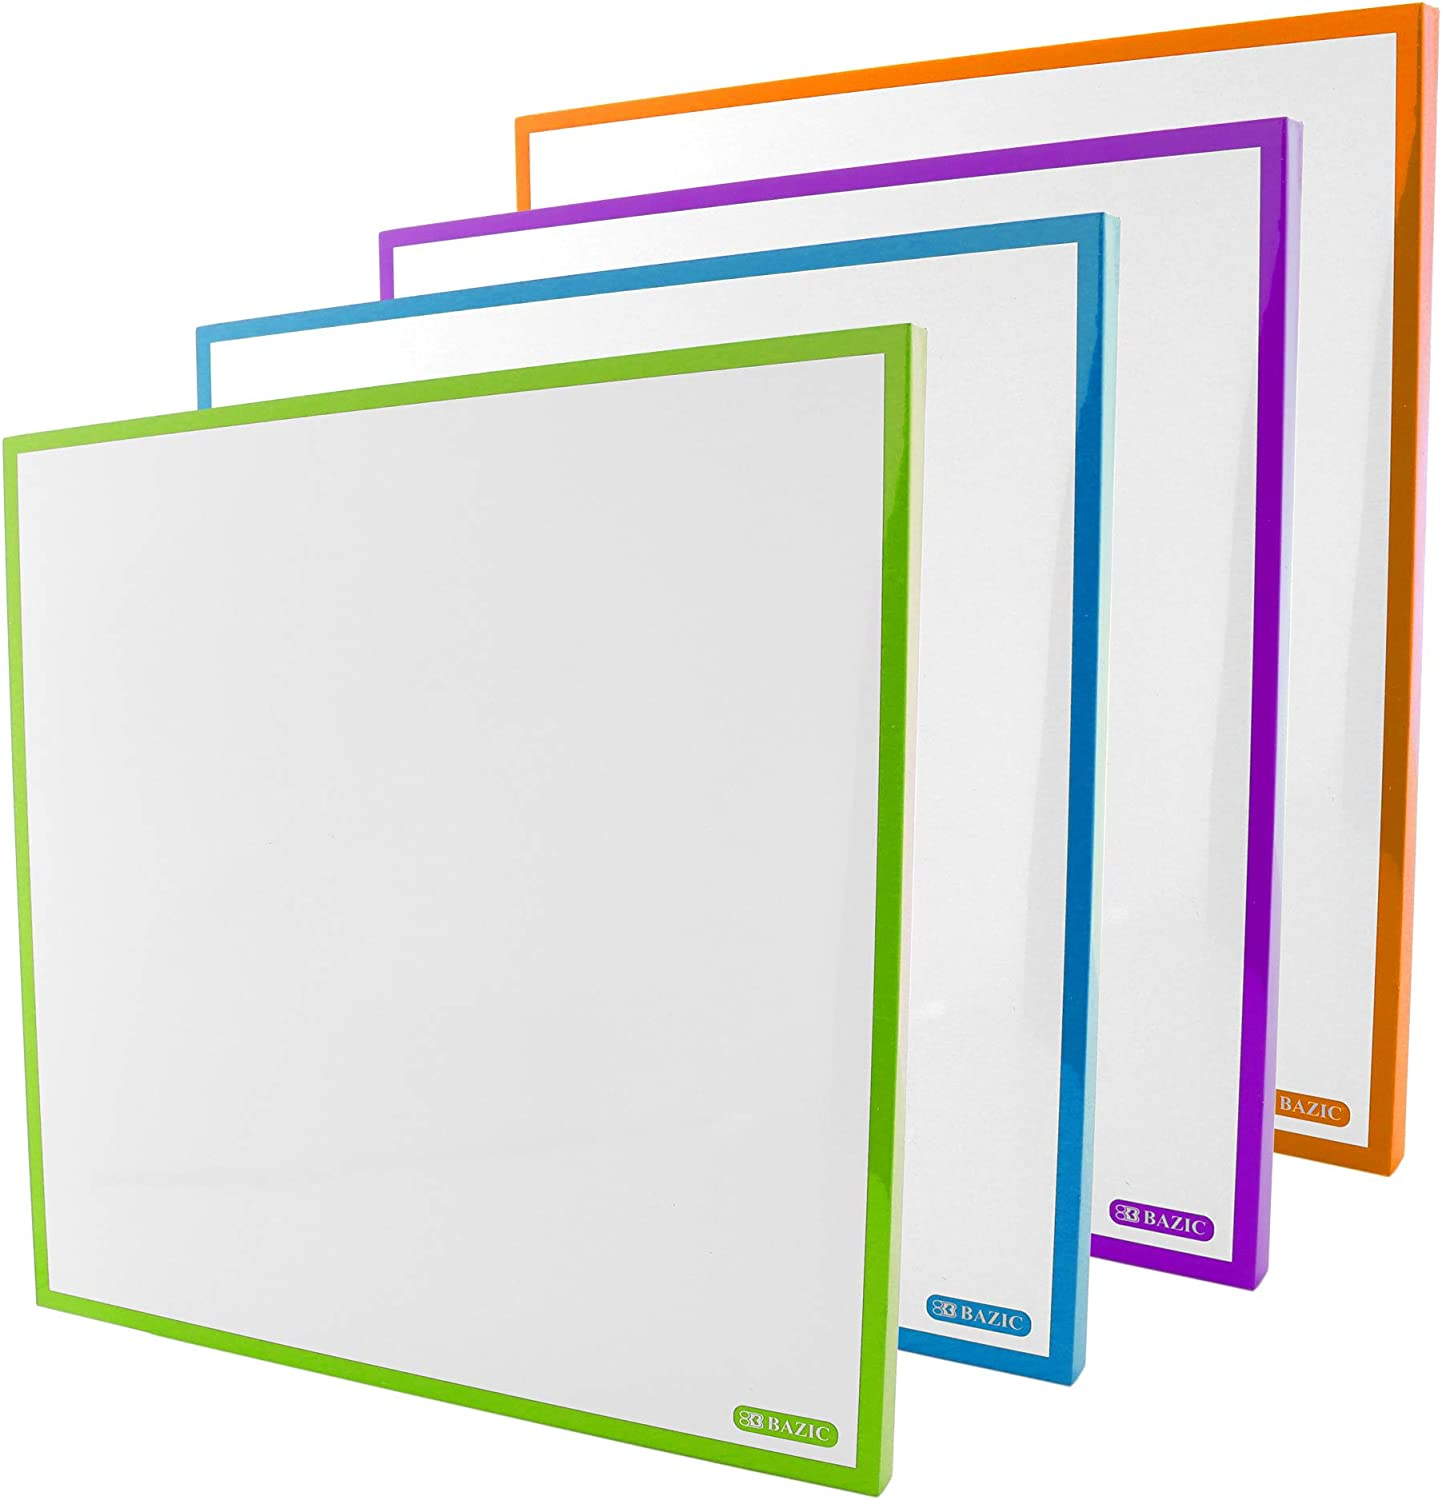 Show-me CFB0410A 4-Frame Clock-Face Dry wipe Boards Pack of 10 Small Kit